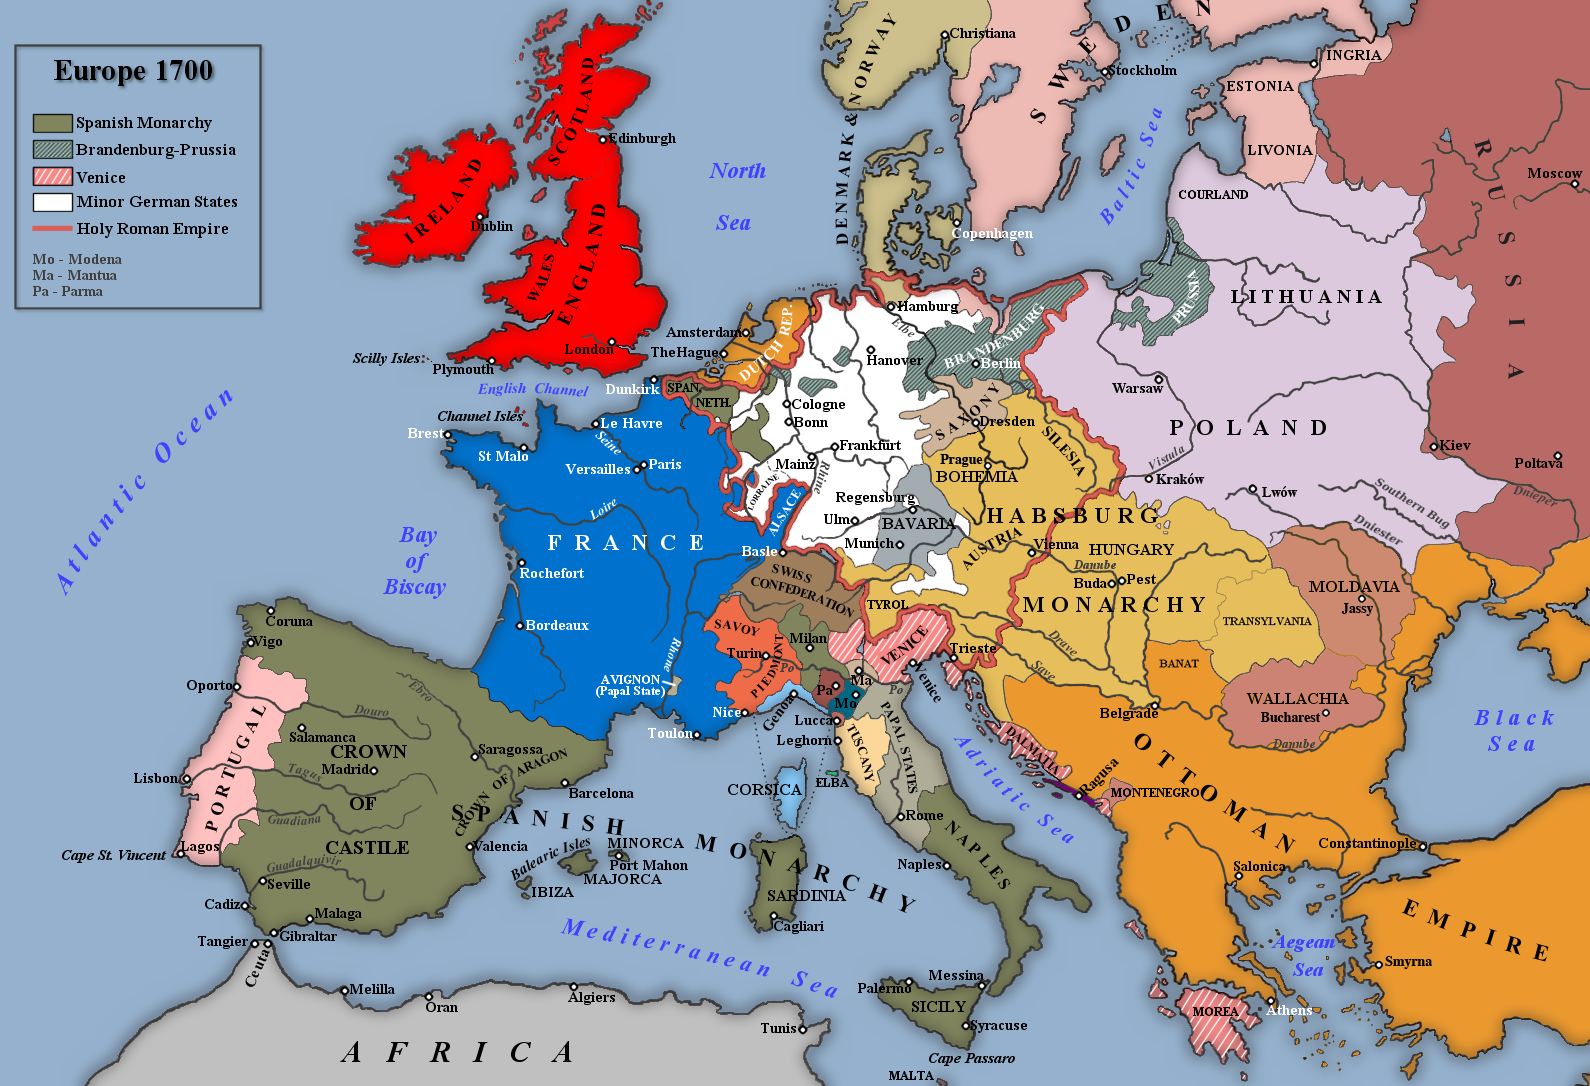 File:Europe, 1700—1714.png - Wikimedia Commons